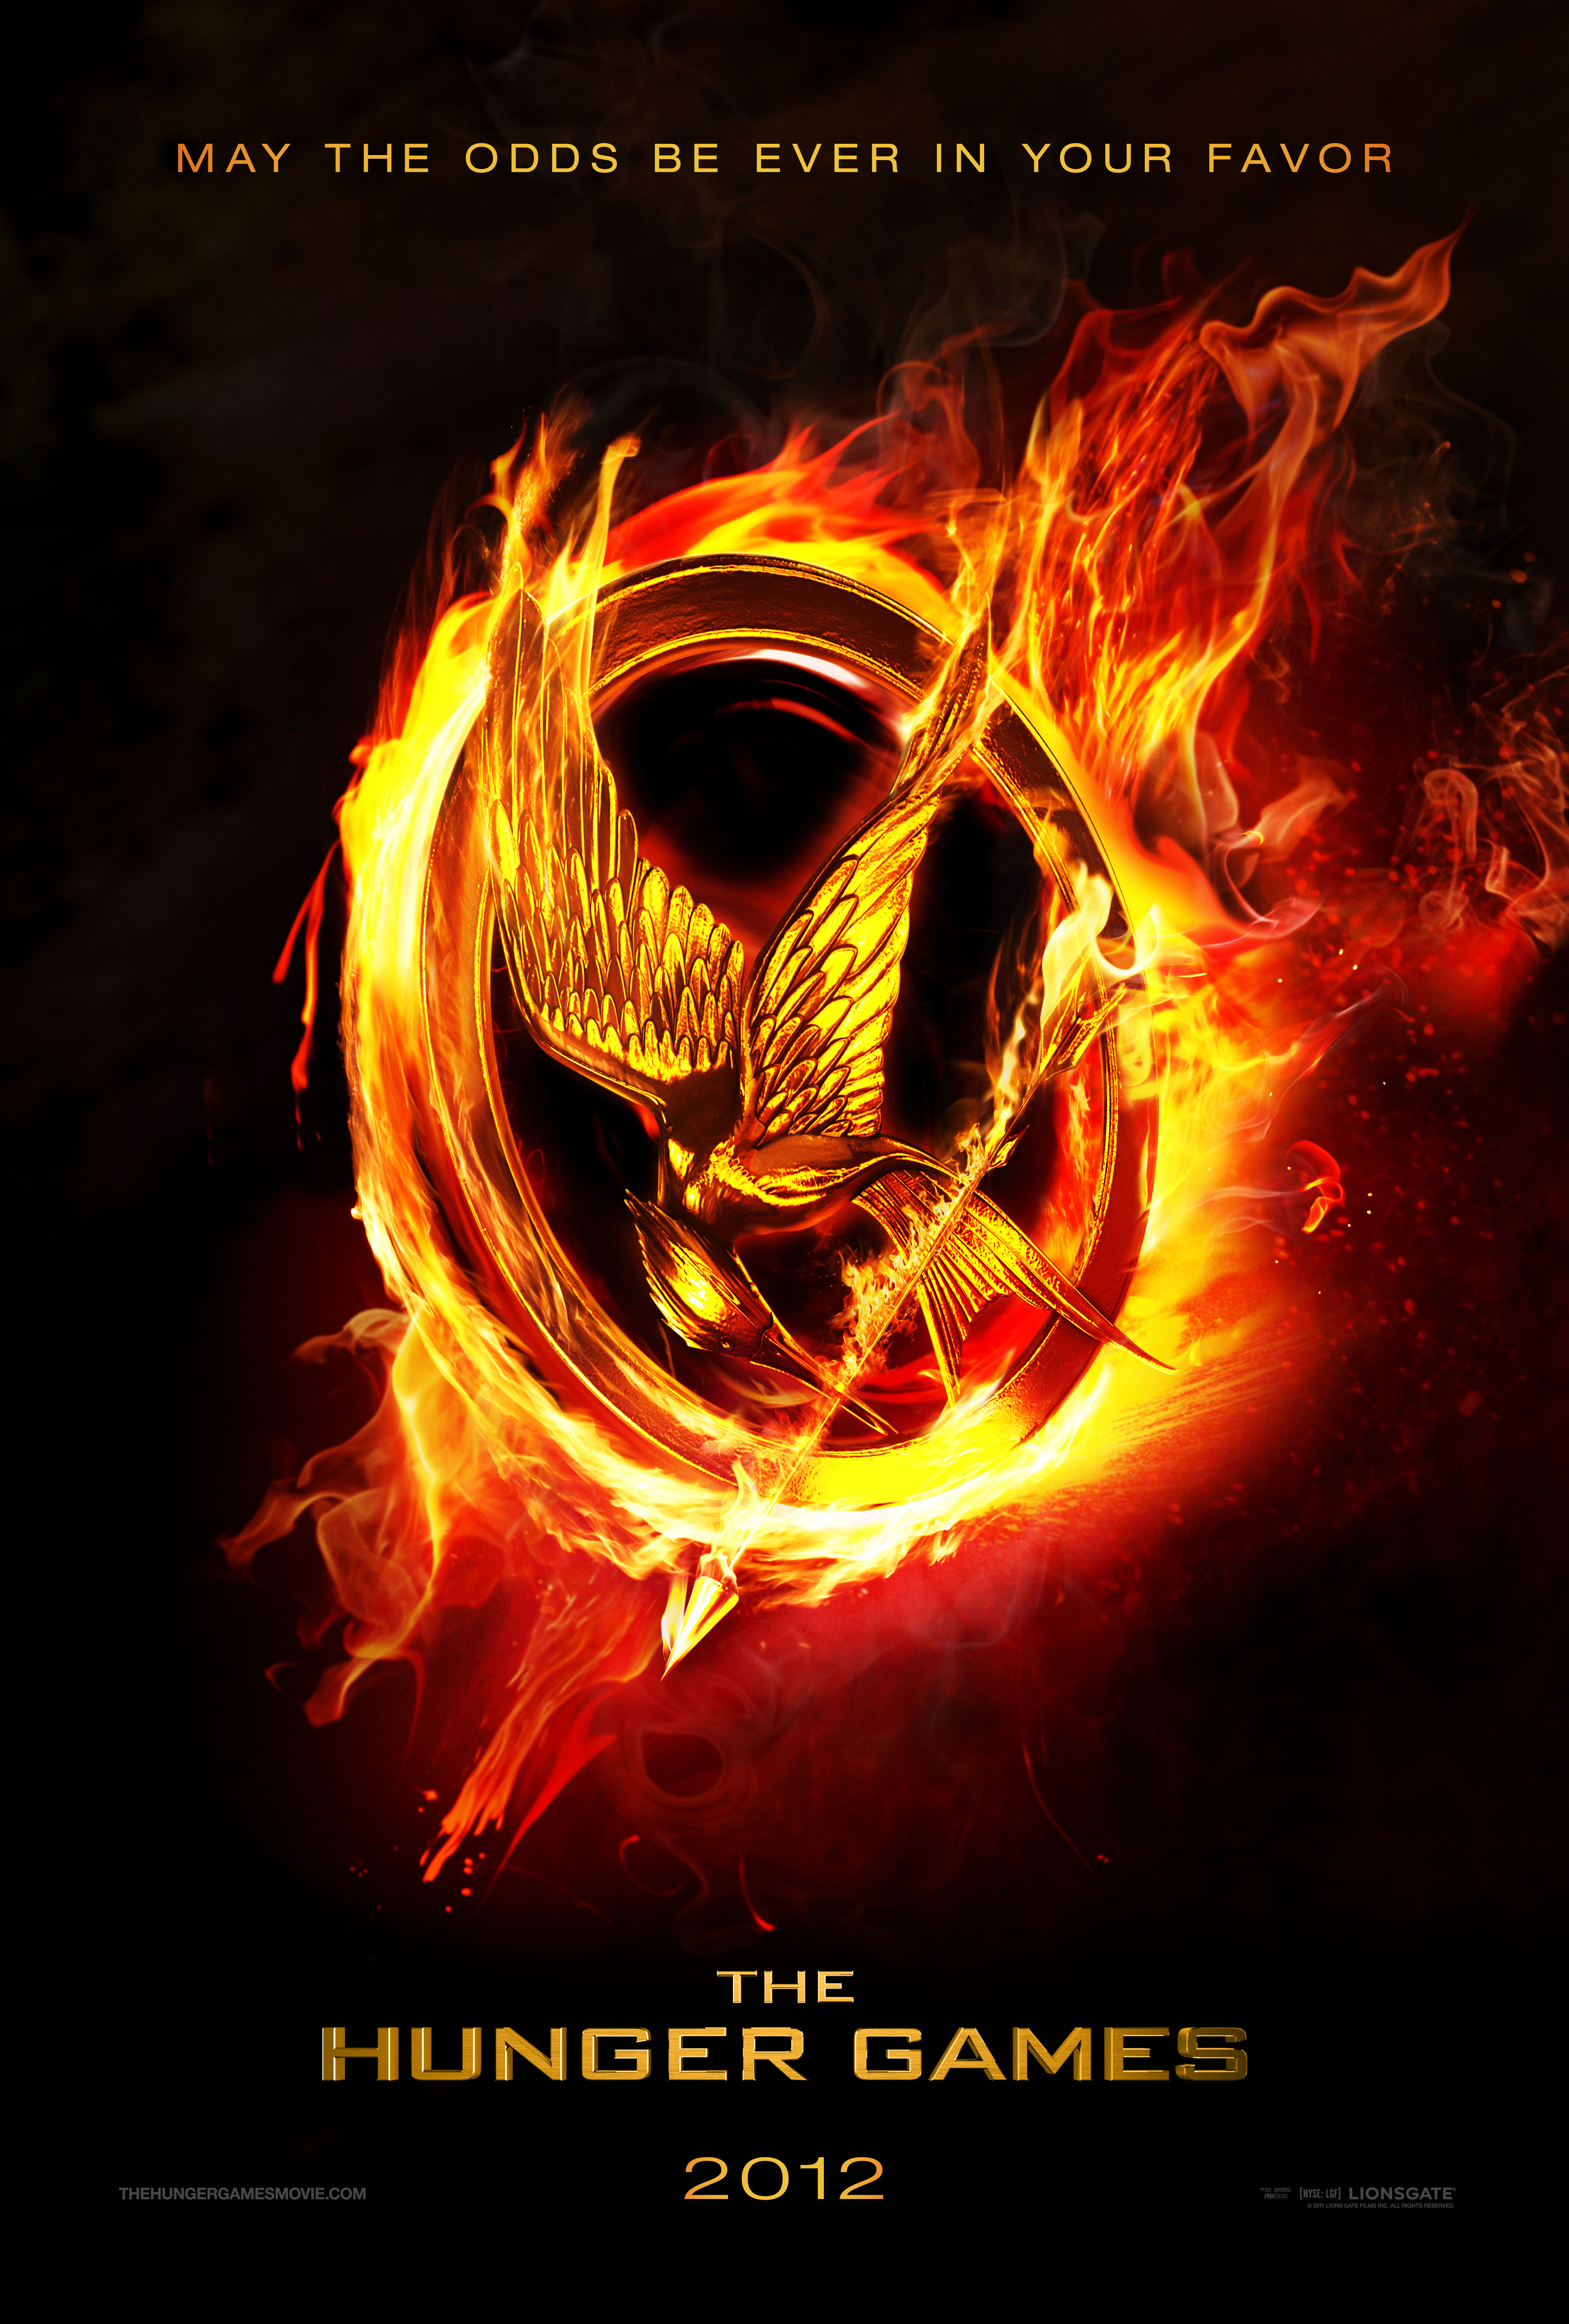 THE HUNGER GAMES: MOCKINGJAY to Be Directed by Francis Lawrence